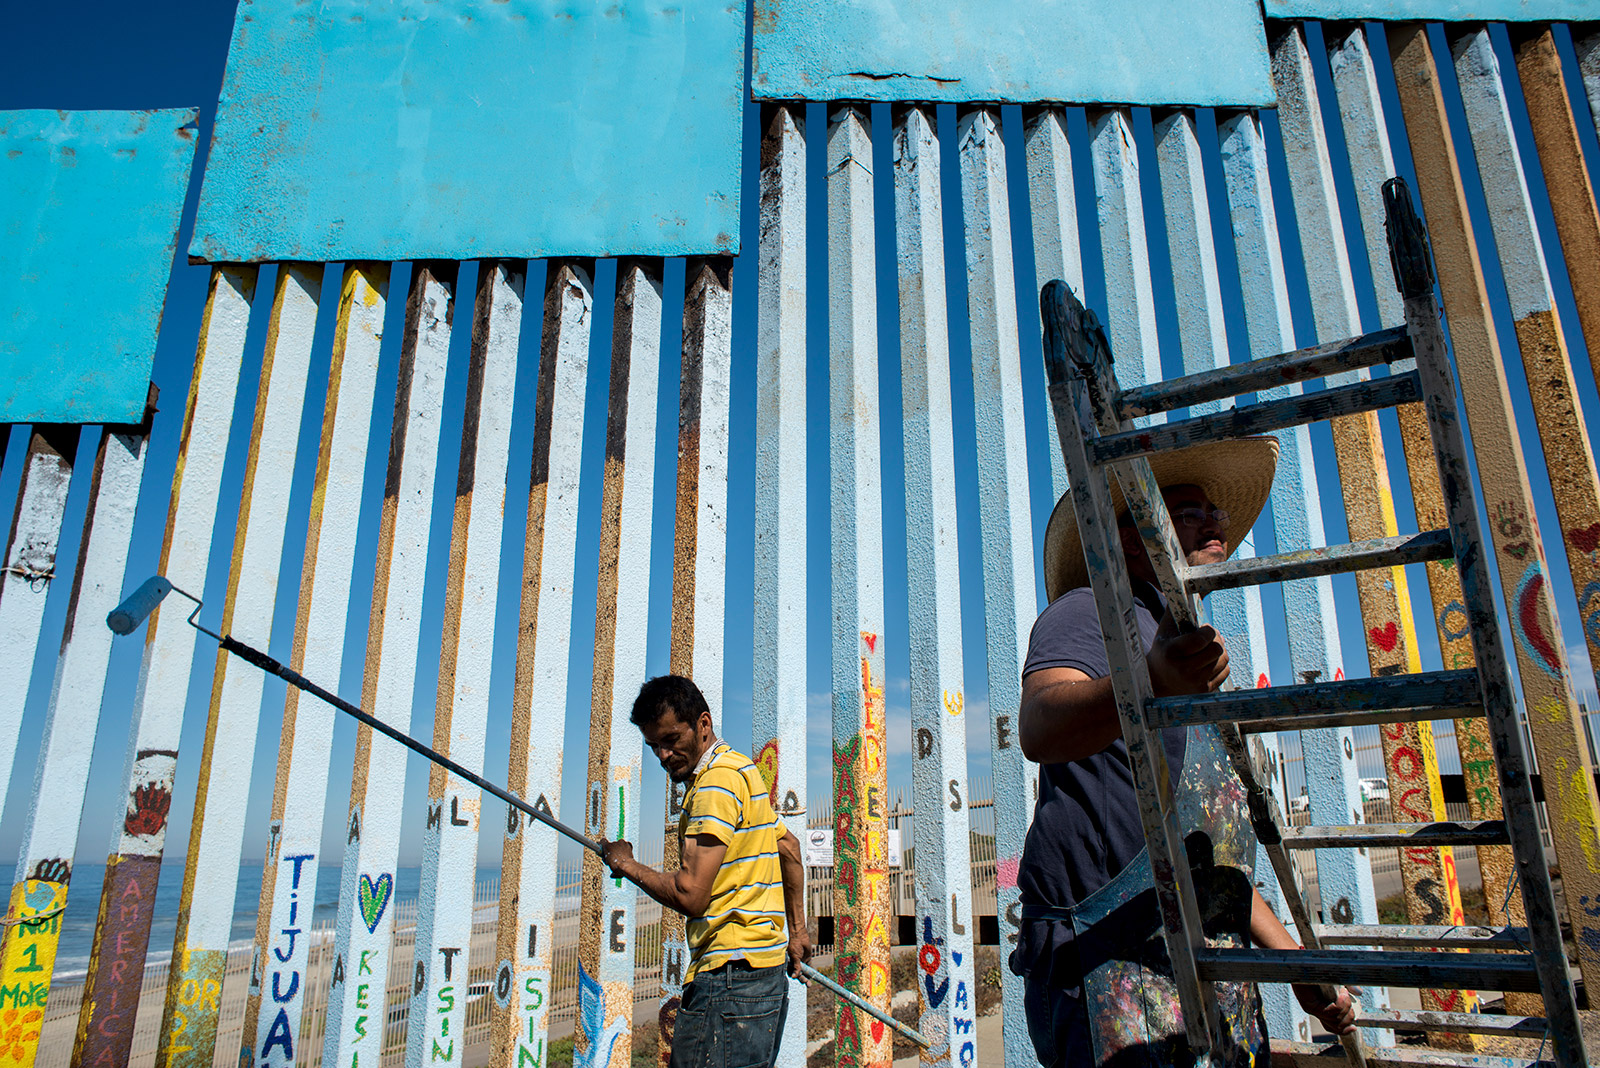 Sergio Tellez, left, volunteers with Enrique Chiu on Oct. 7, 2017, as they paint the easternmost edge of fencing along the U.S.-Mexico border in Tijuana. Tellez used a paint roller to help remove corroded metal from the fencing before adding a new layer of blue. <em>(Brandon Quester/inewsource)</em>